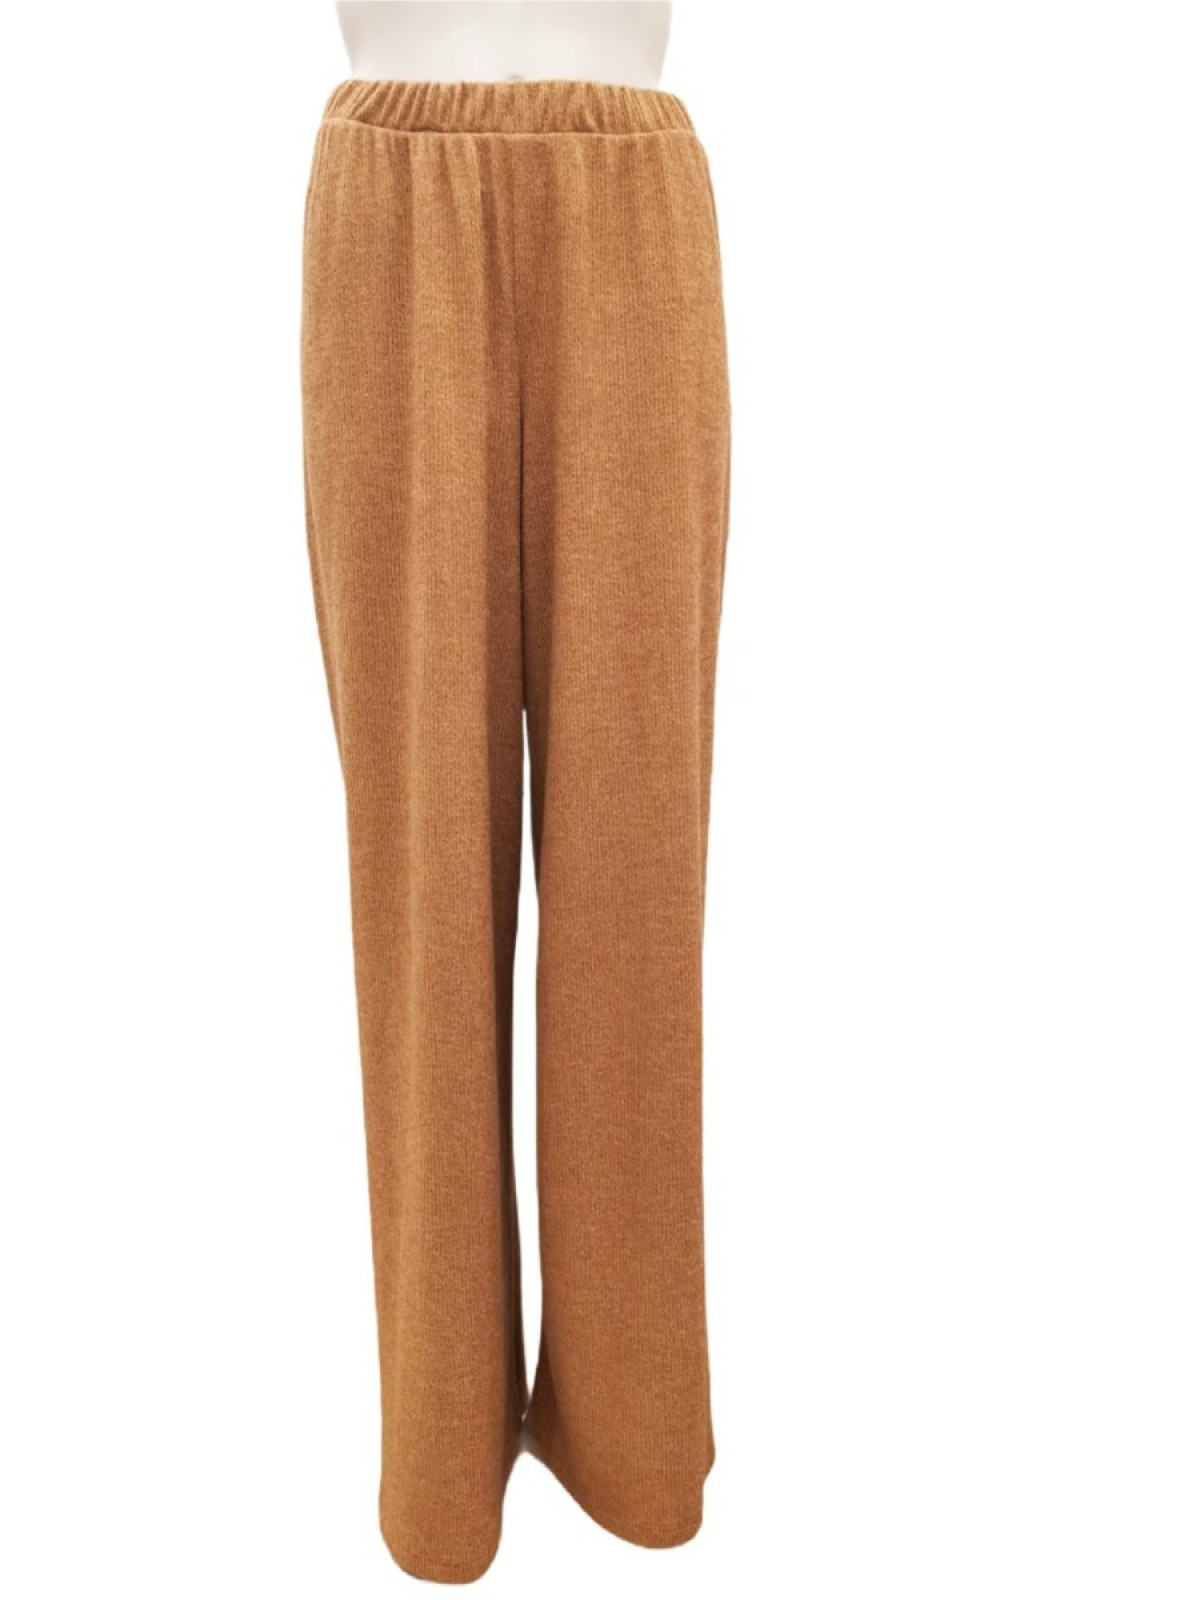 CARAMEL KNIT TROUSERS